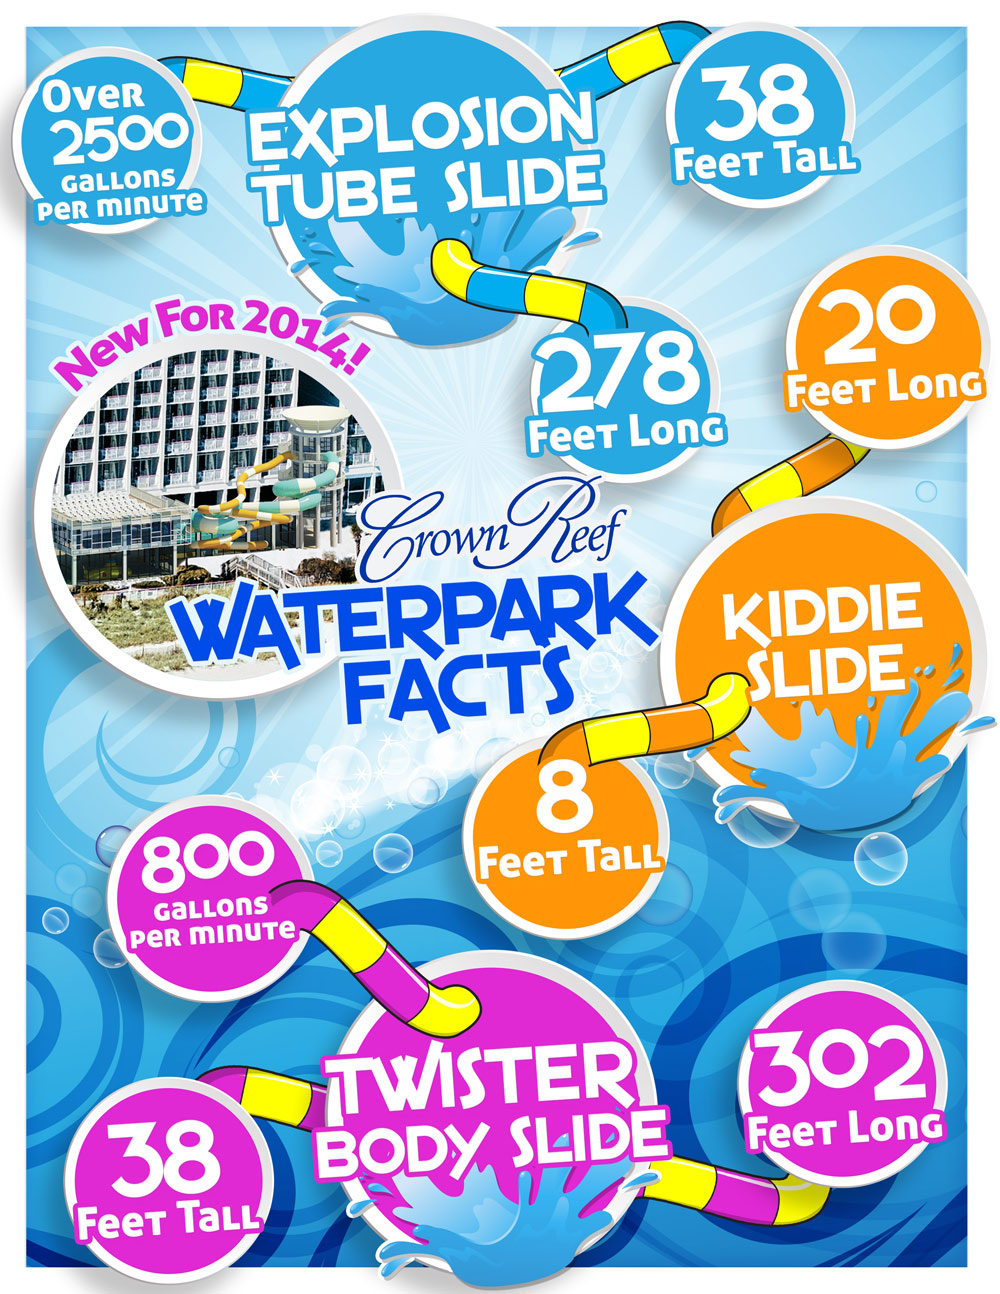 Crown Reef new waterpark facts and figures in Myrtle Beach.